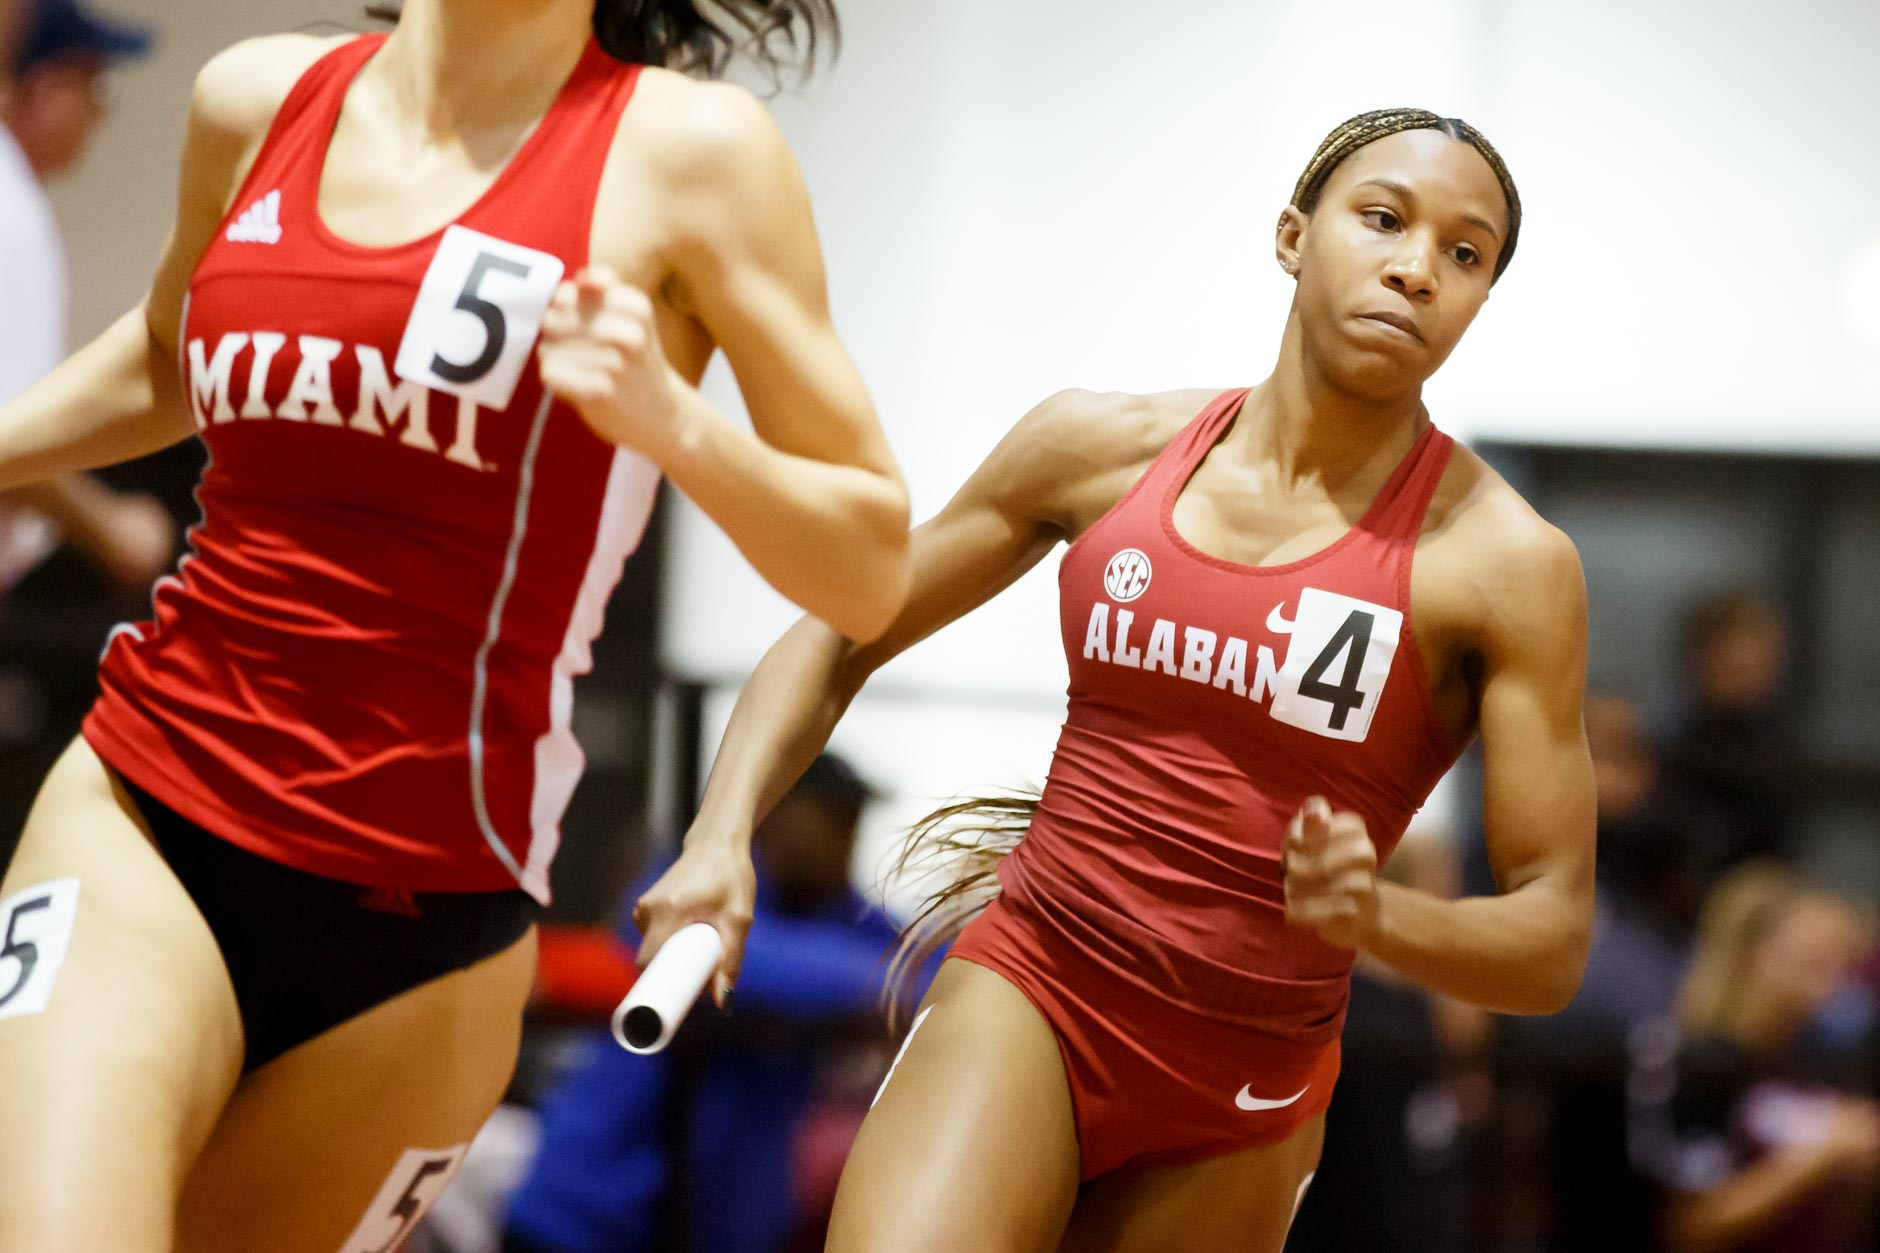 Alabama's D'Jai Baker competes in the 4x400 meter relay during the Indiana University Relays in Bloomington, Indiana on Saturday, Feb. 1, 2020. (Photo by James Brosher)